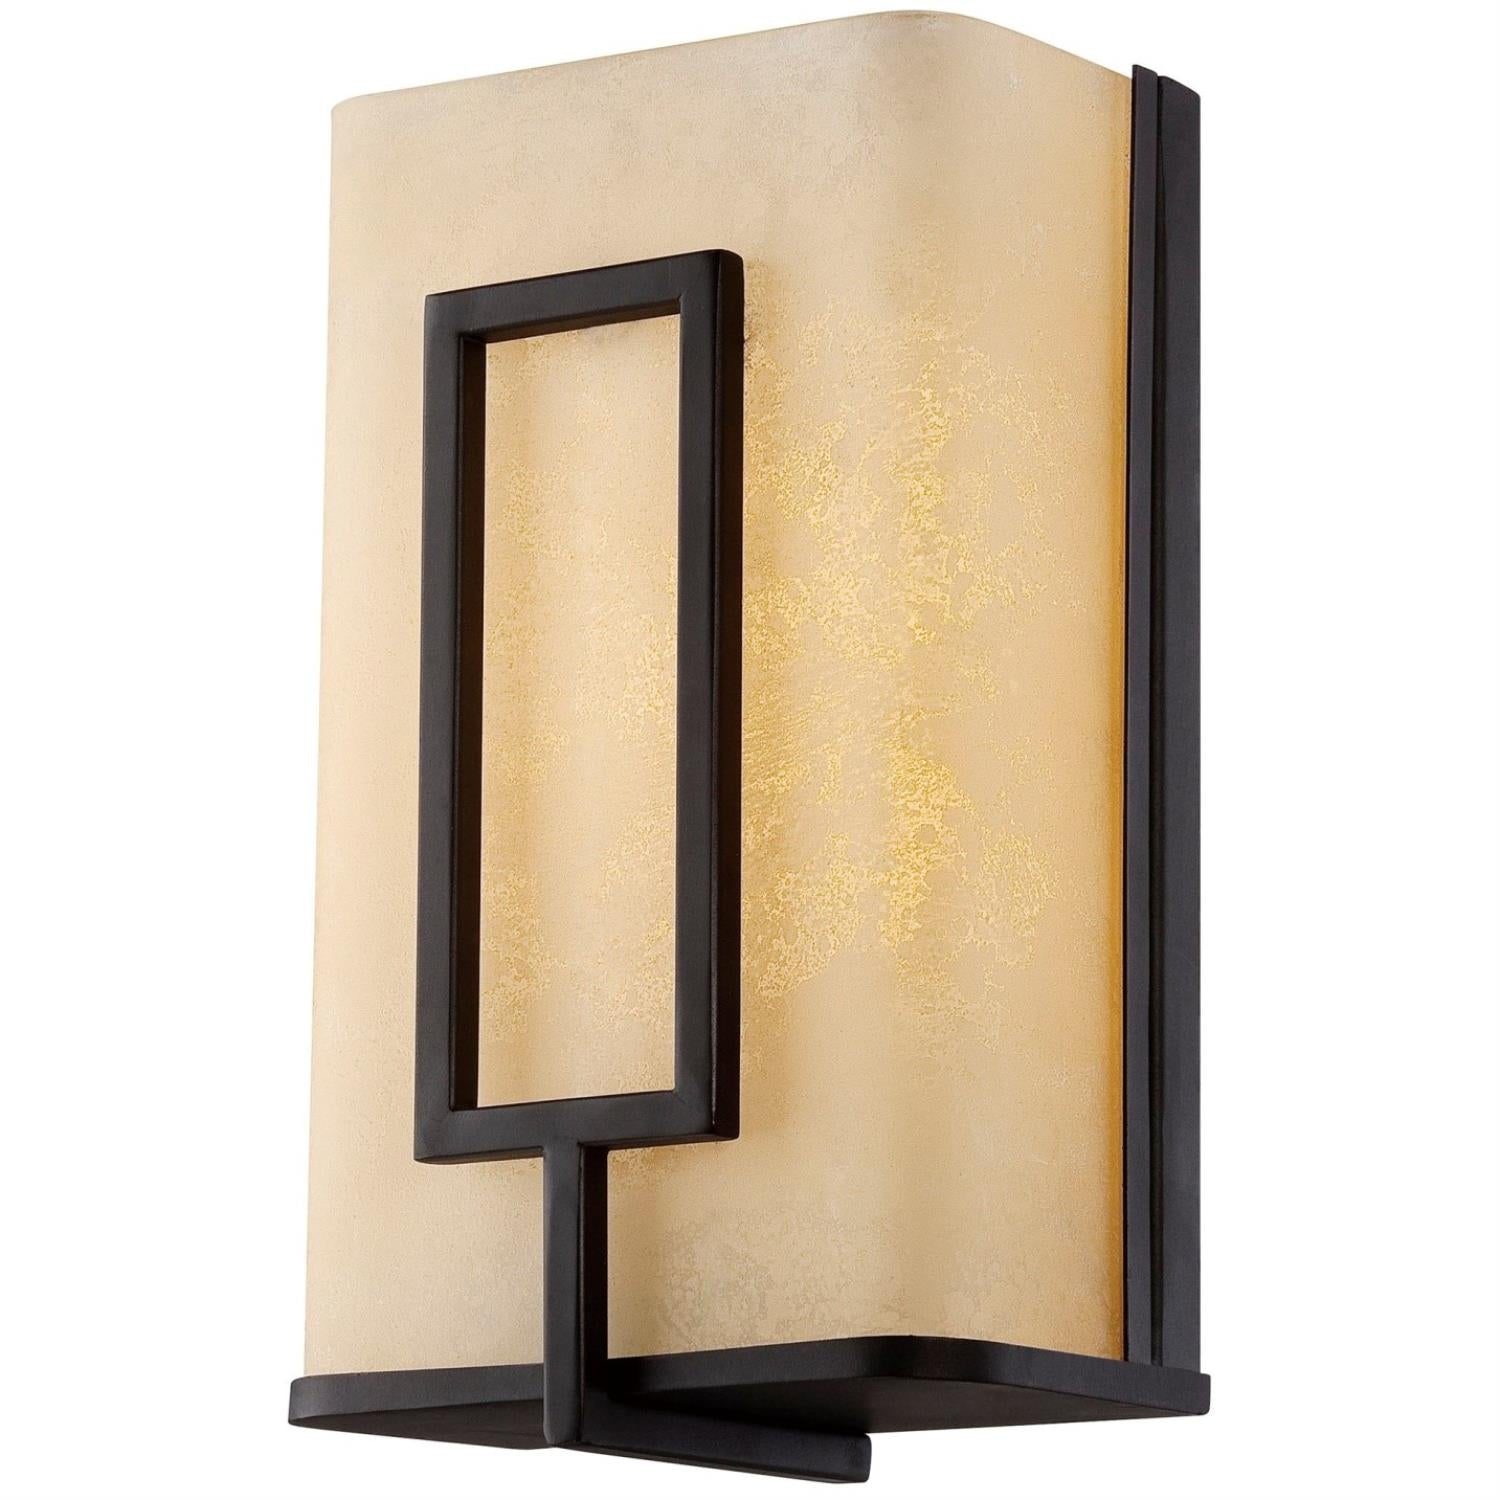 SUNLITE 6in 15w Wall Sconce in Copper bronze finish - 3000K